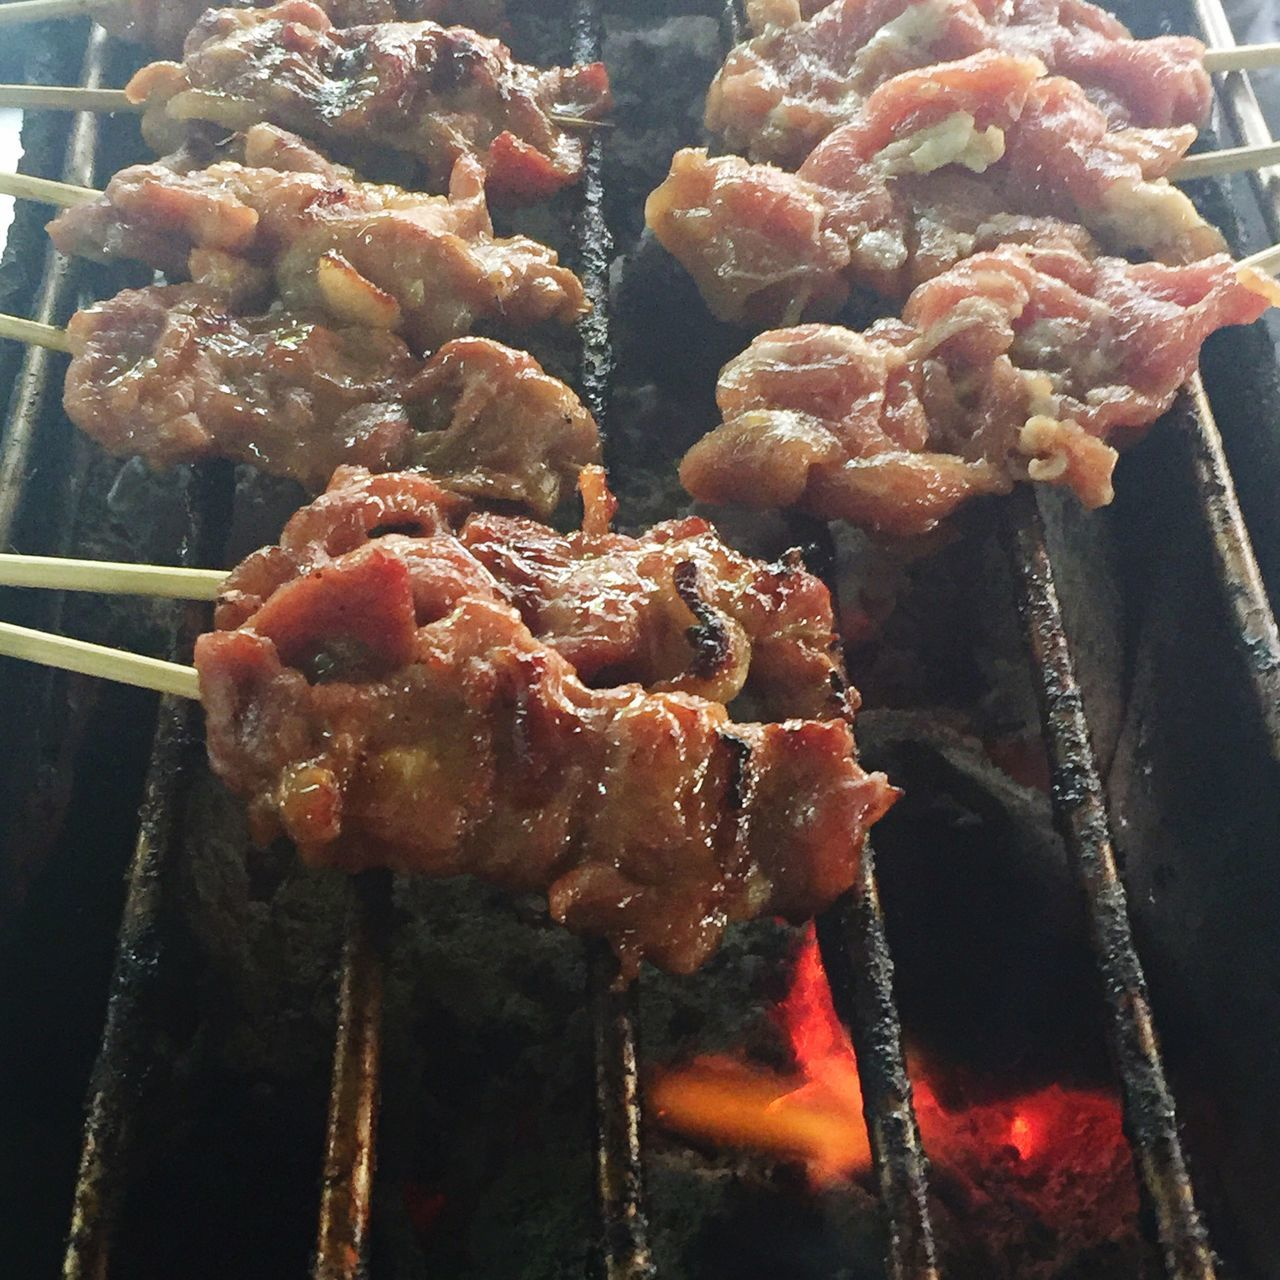 food and drink, barbecue, chicken meat, grilled, food, skewer, barbecue grill, no people, meat, freshness, close-up, healthy eating, kebab, ready-to-eat, indoors, day